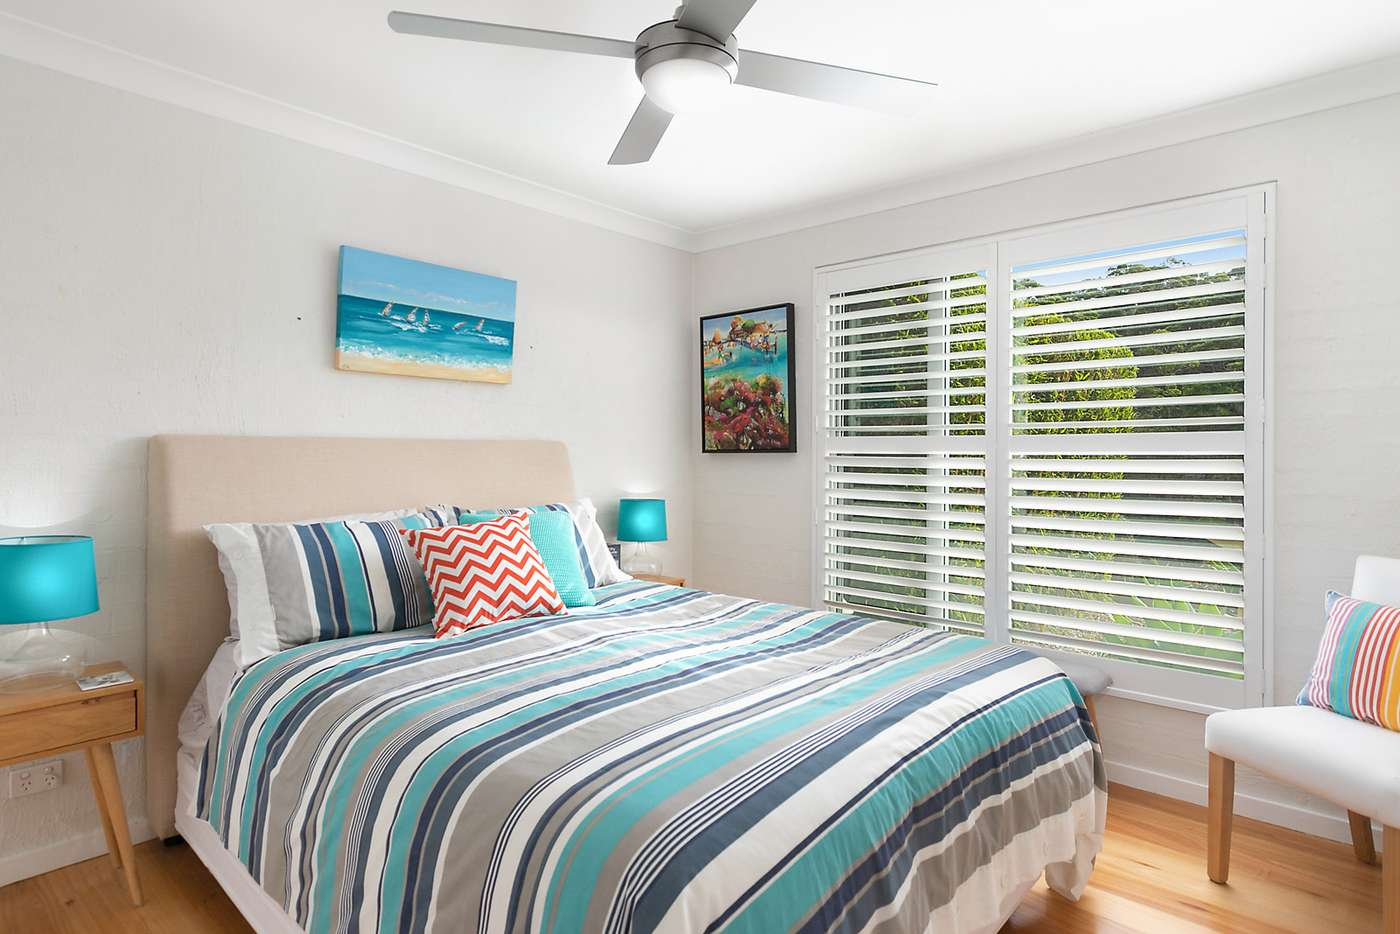 Sixth view of Homely house listing, 34 Mison Circuit, Mollymook NSW 2539